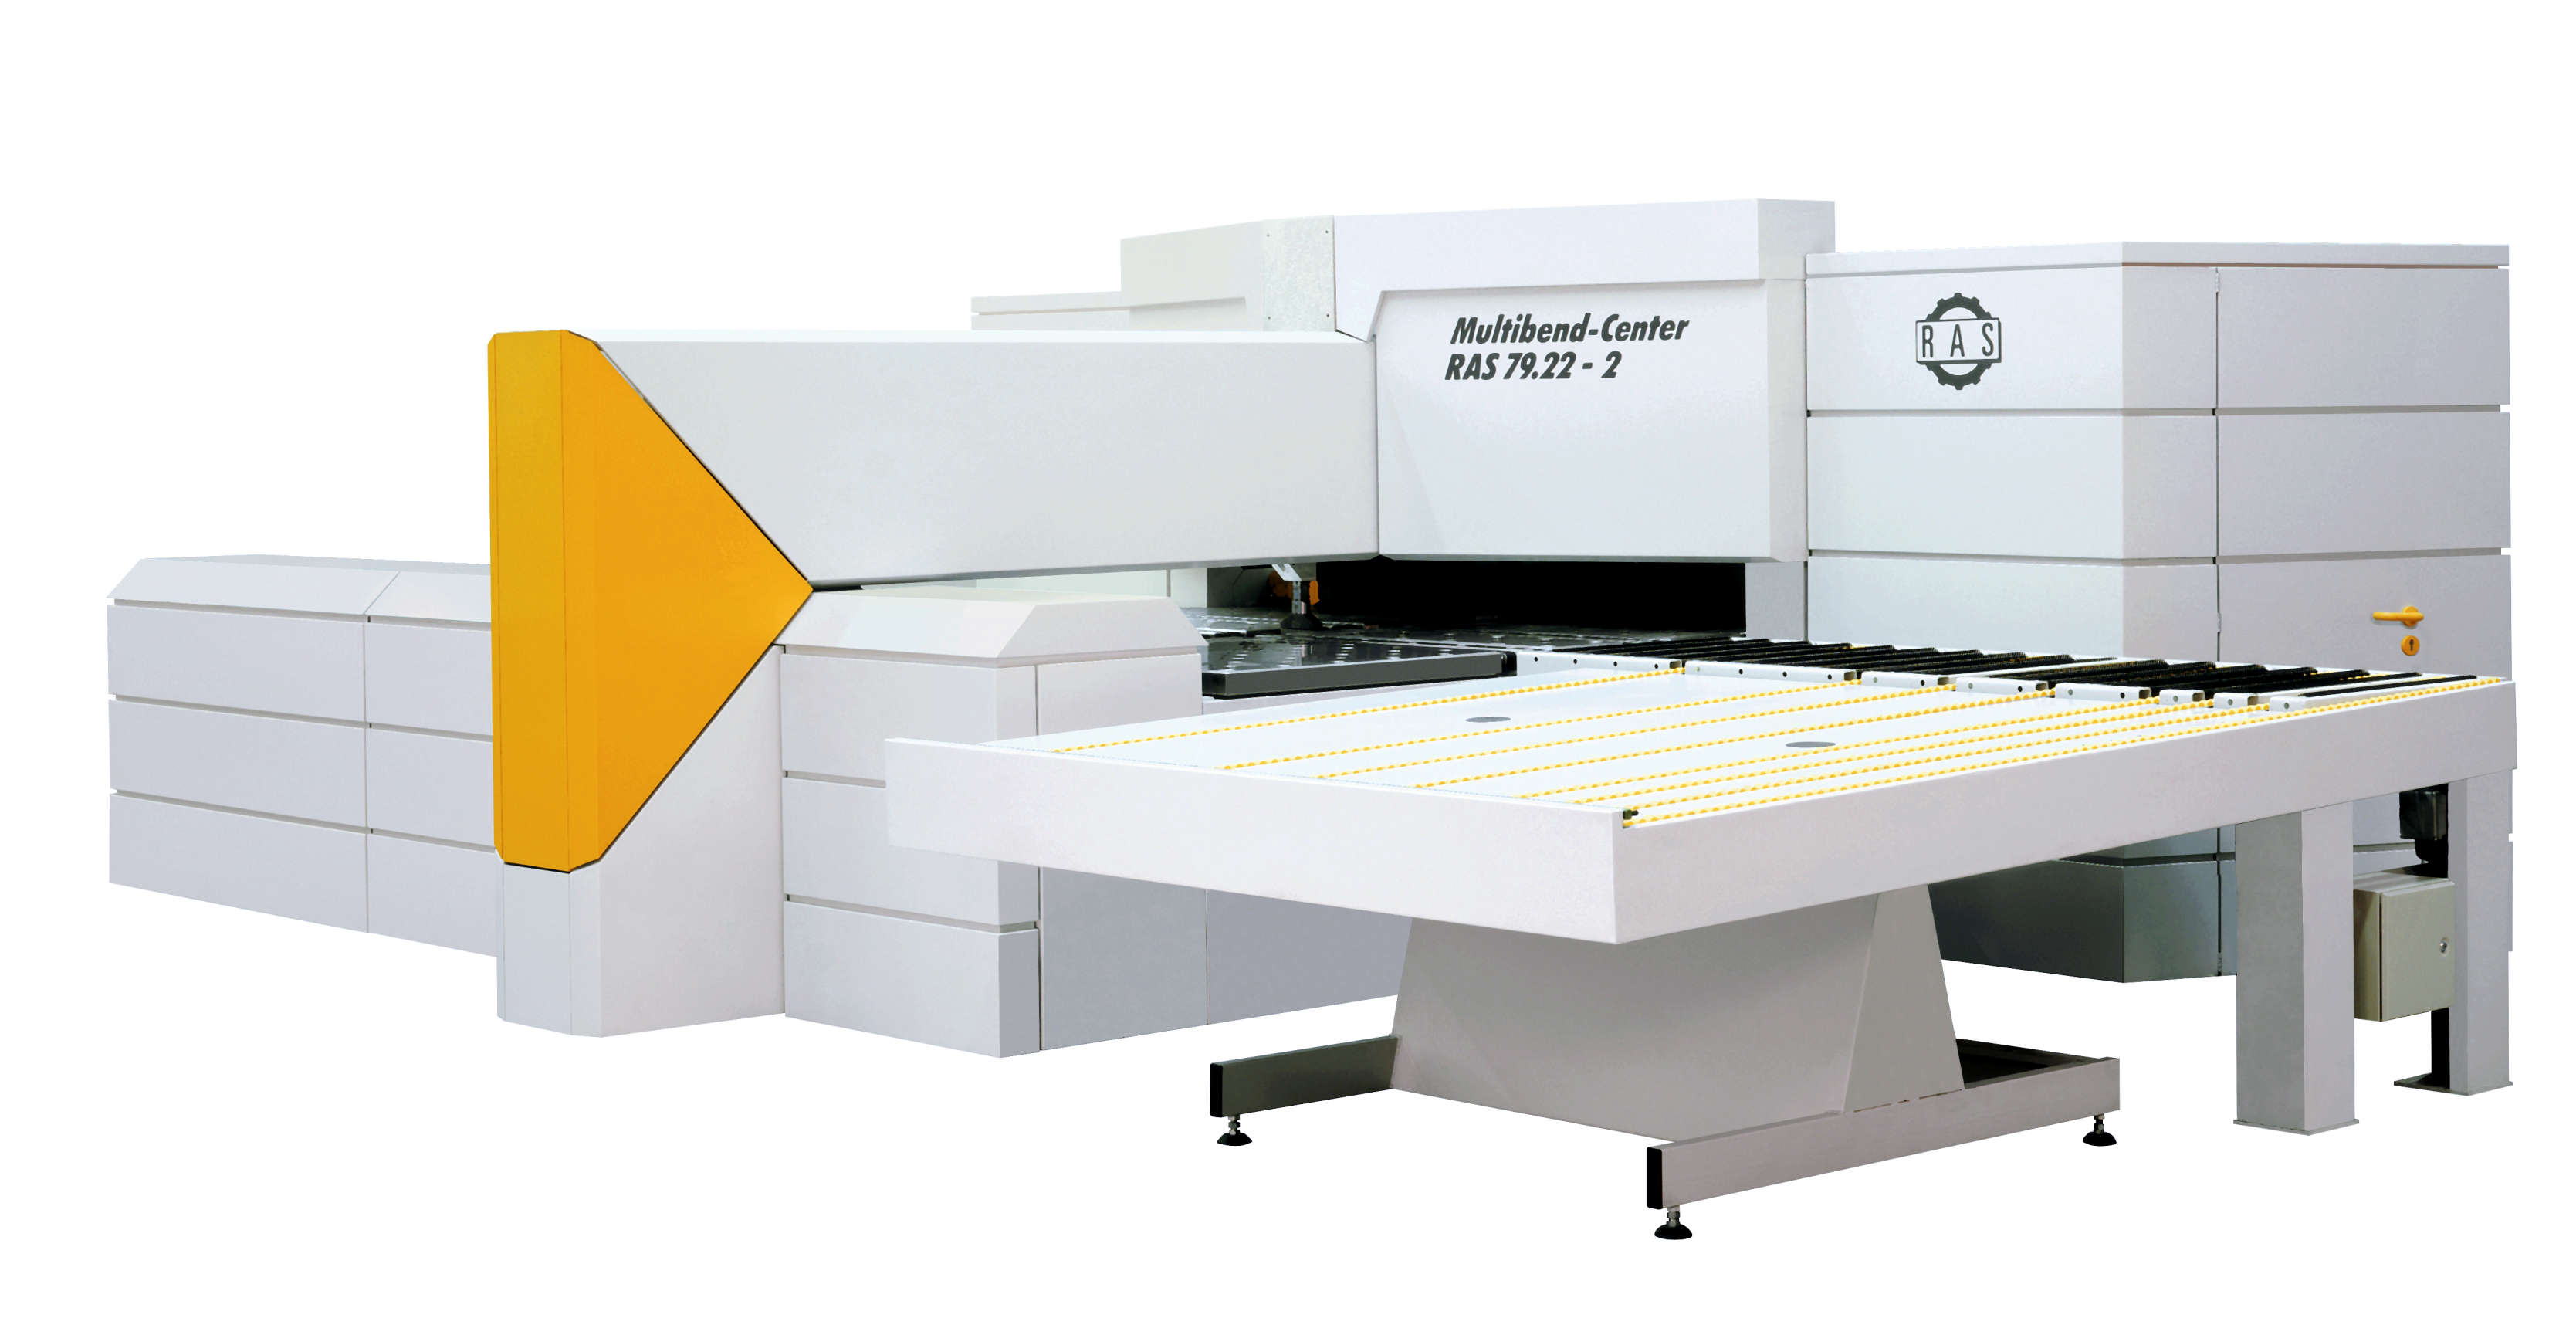 Fully automated bending with the Multibend-Center RAS 79.22-2